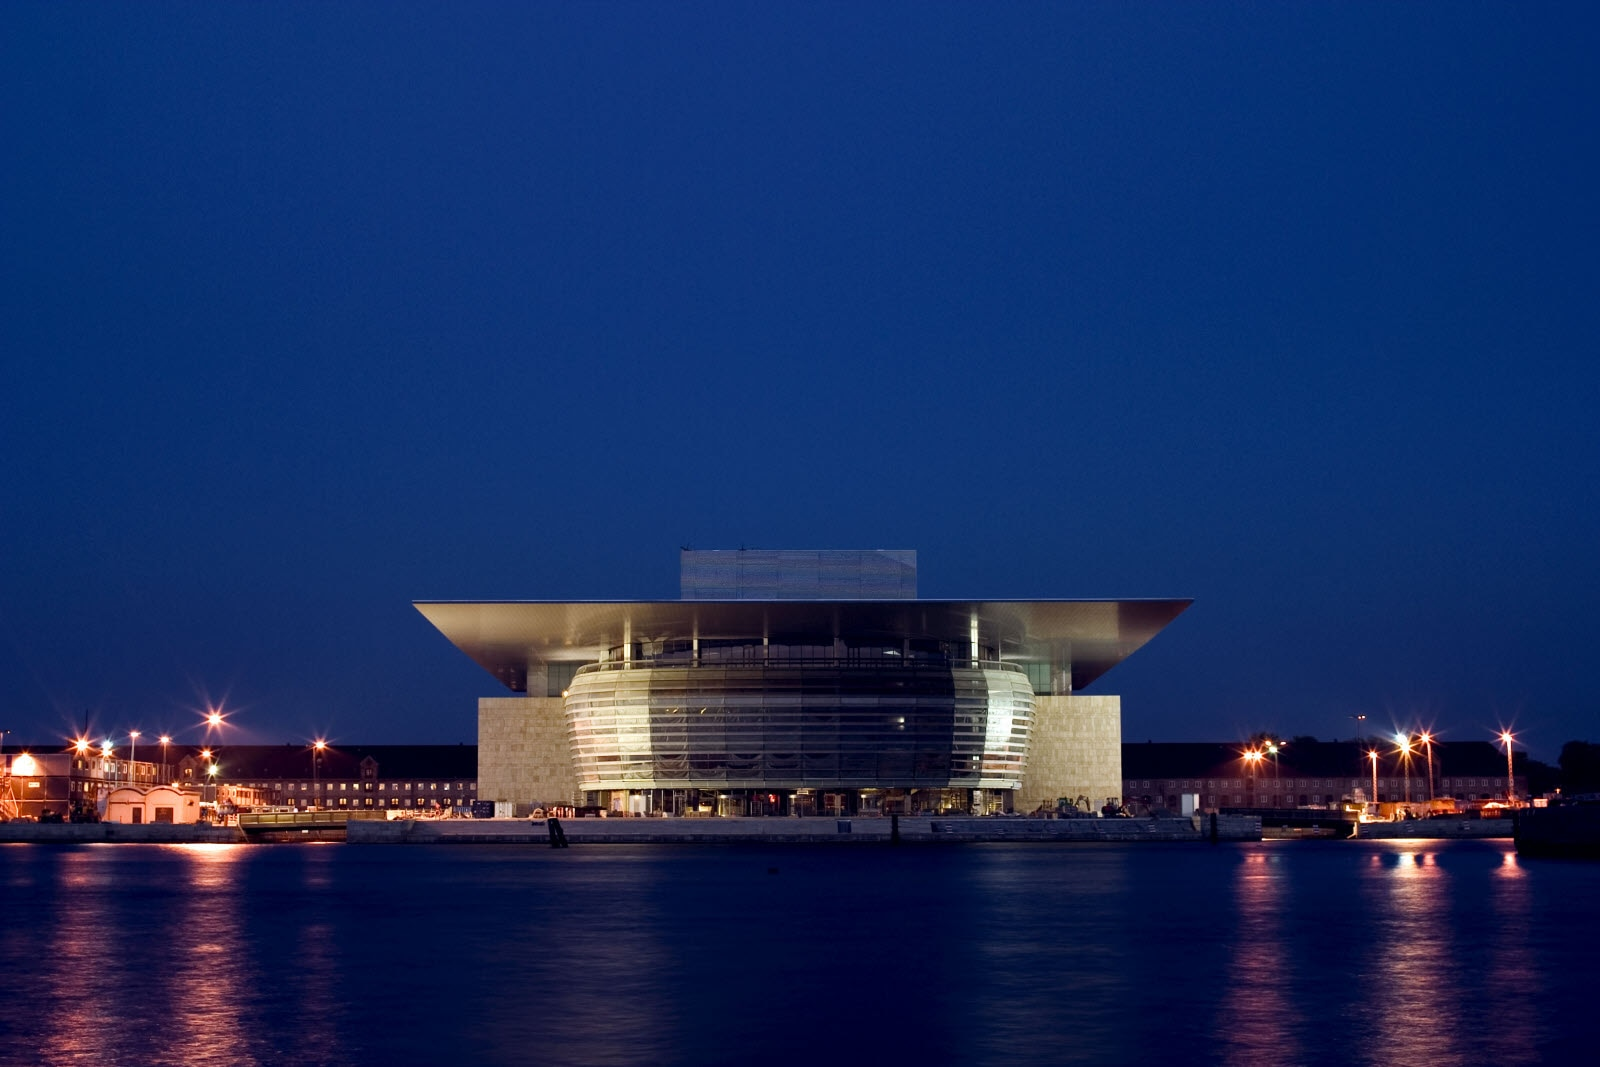 The Opera House in Copenhagen